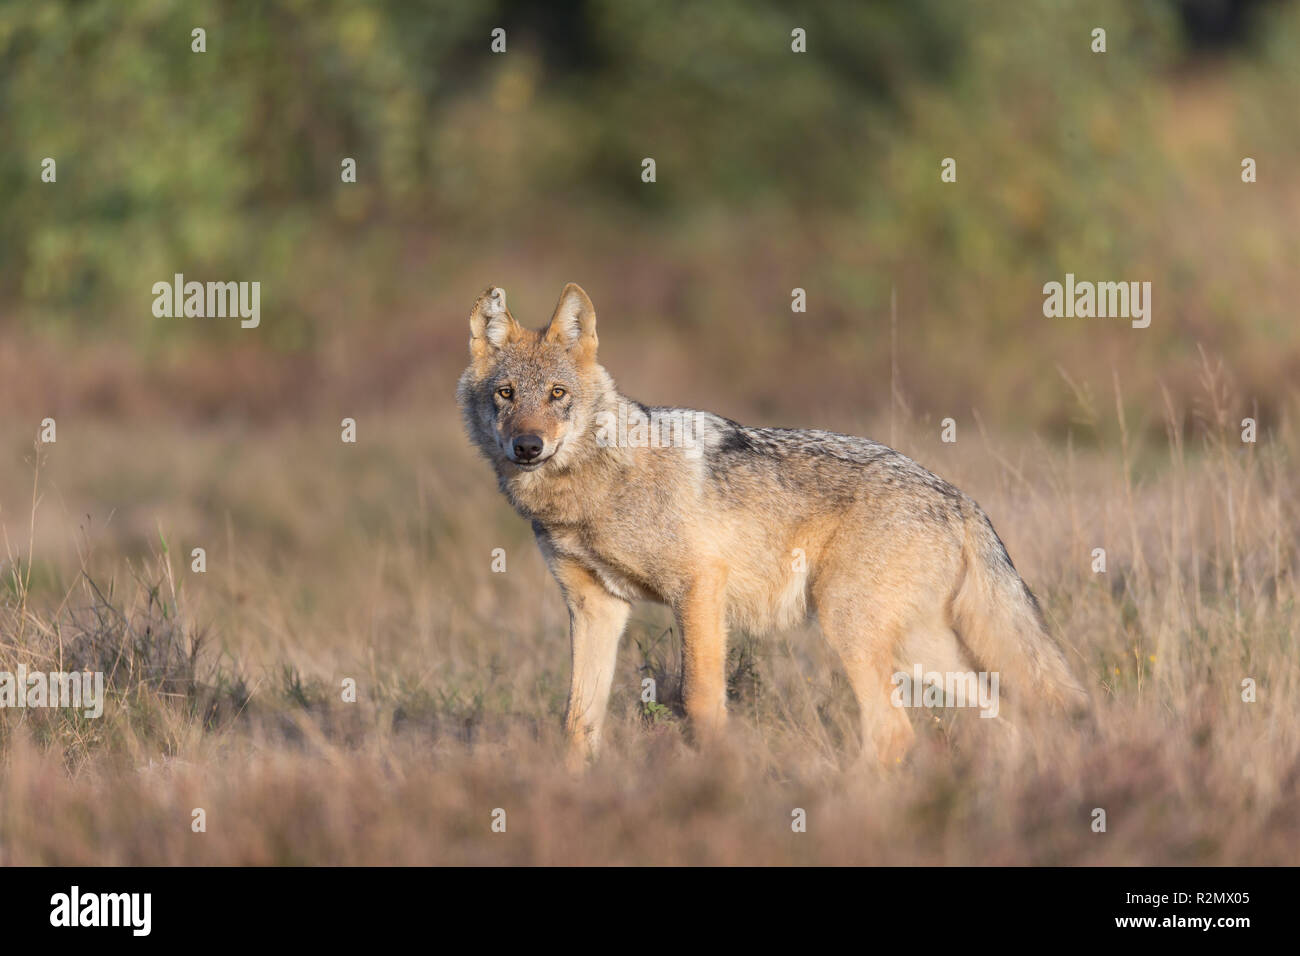 Wolf in the wild - Stock Image